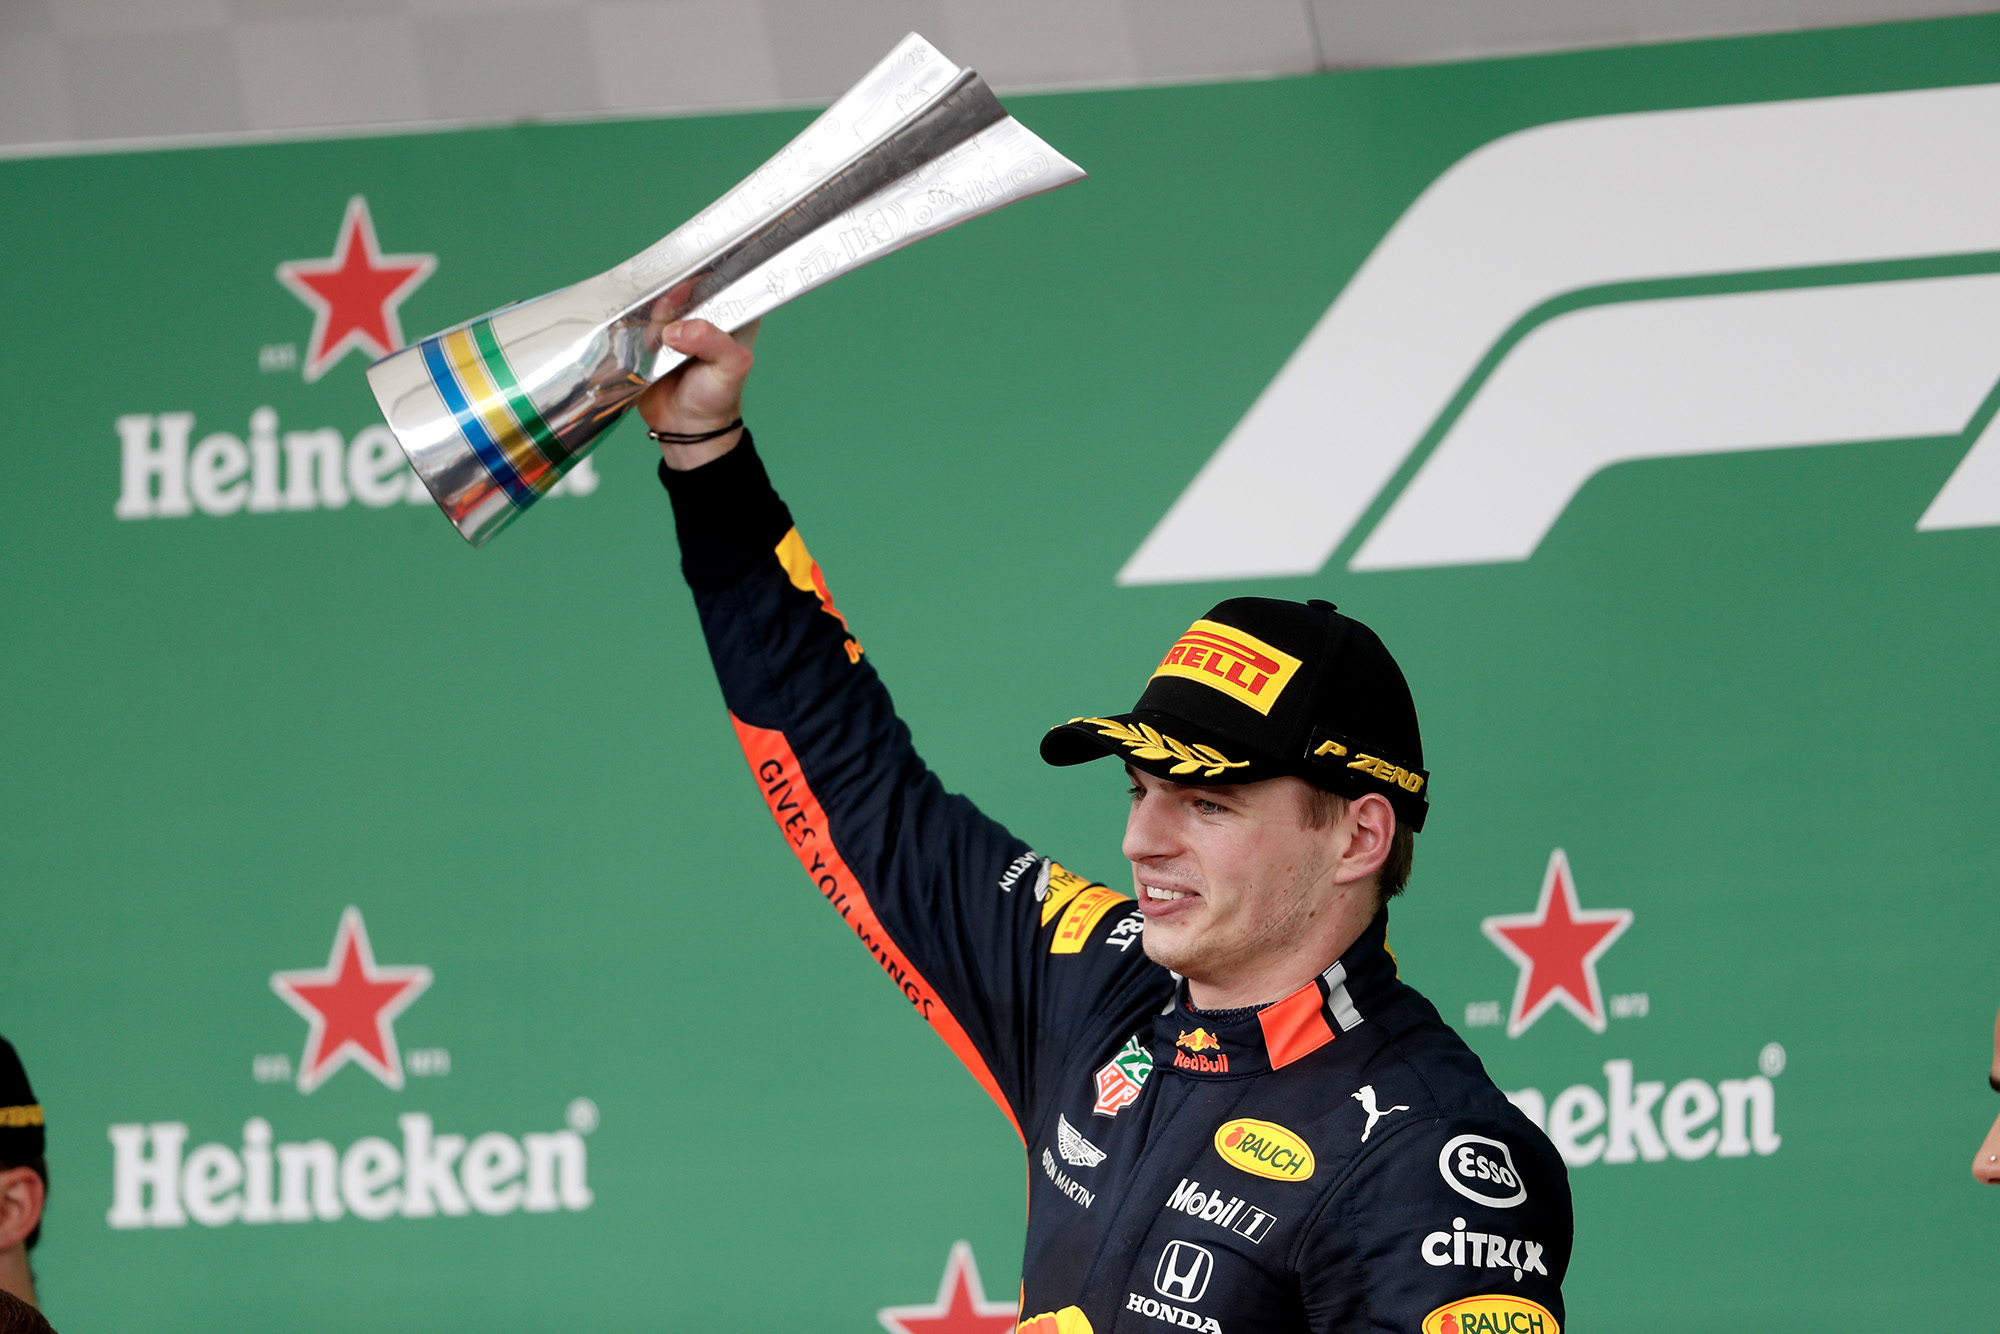 Max Verstappen celebrates victory at the 2019 Brazilian Grand Prix